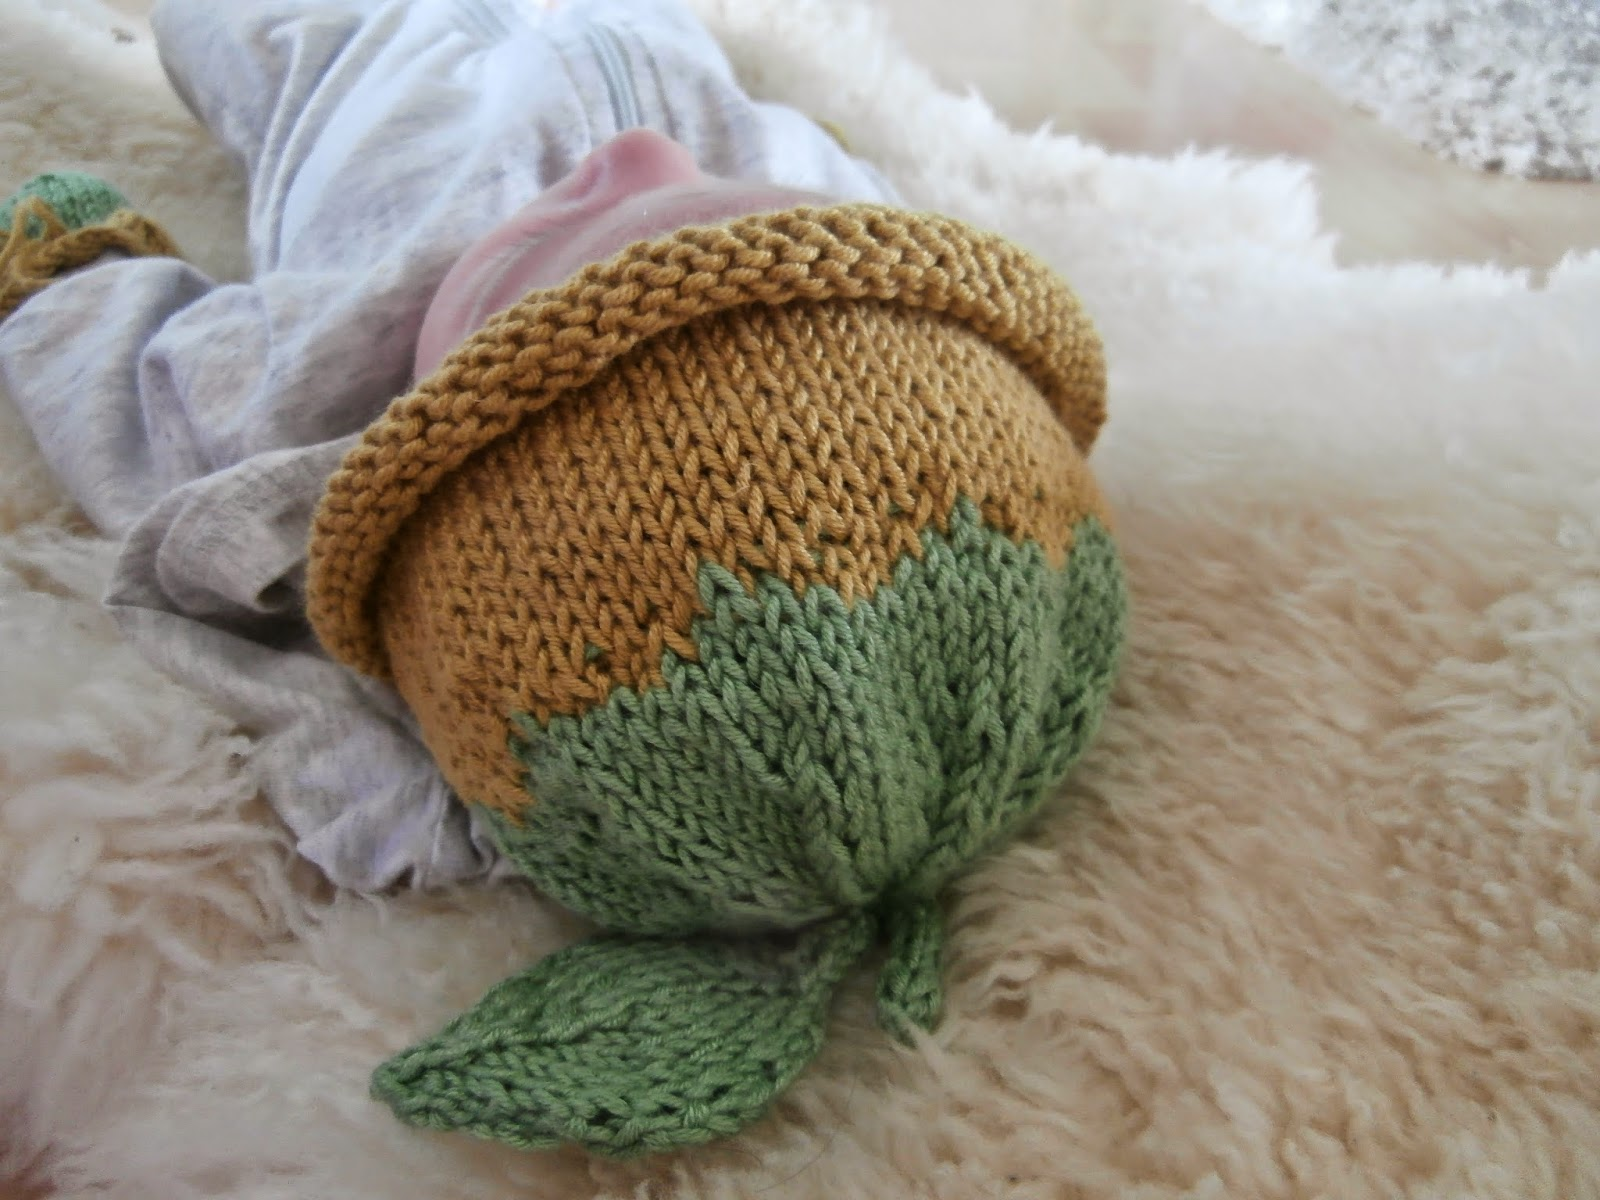 Knitting Patterns For Scratch Mittens : Honey Nutbrowns: Knitting!: Little Sapling Newborn Hat and Scratch Mitts